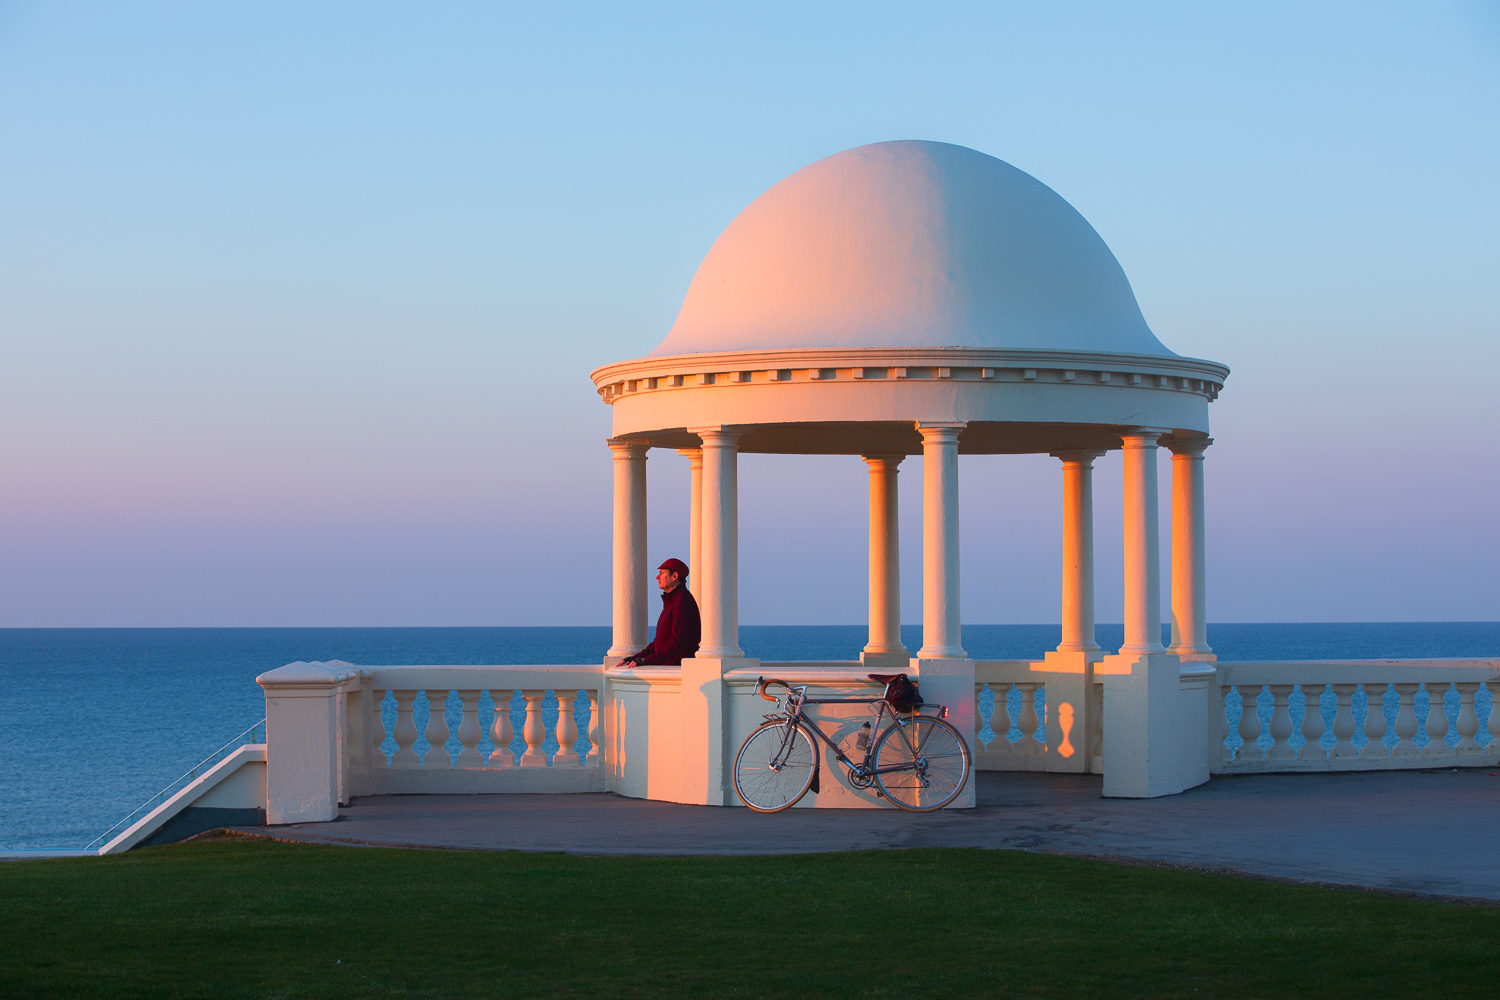 Man standing beneath classical dome by seaside looking at sunrise